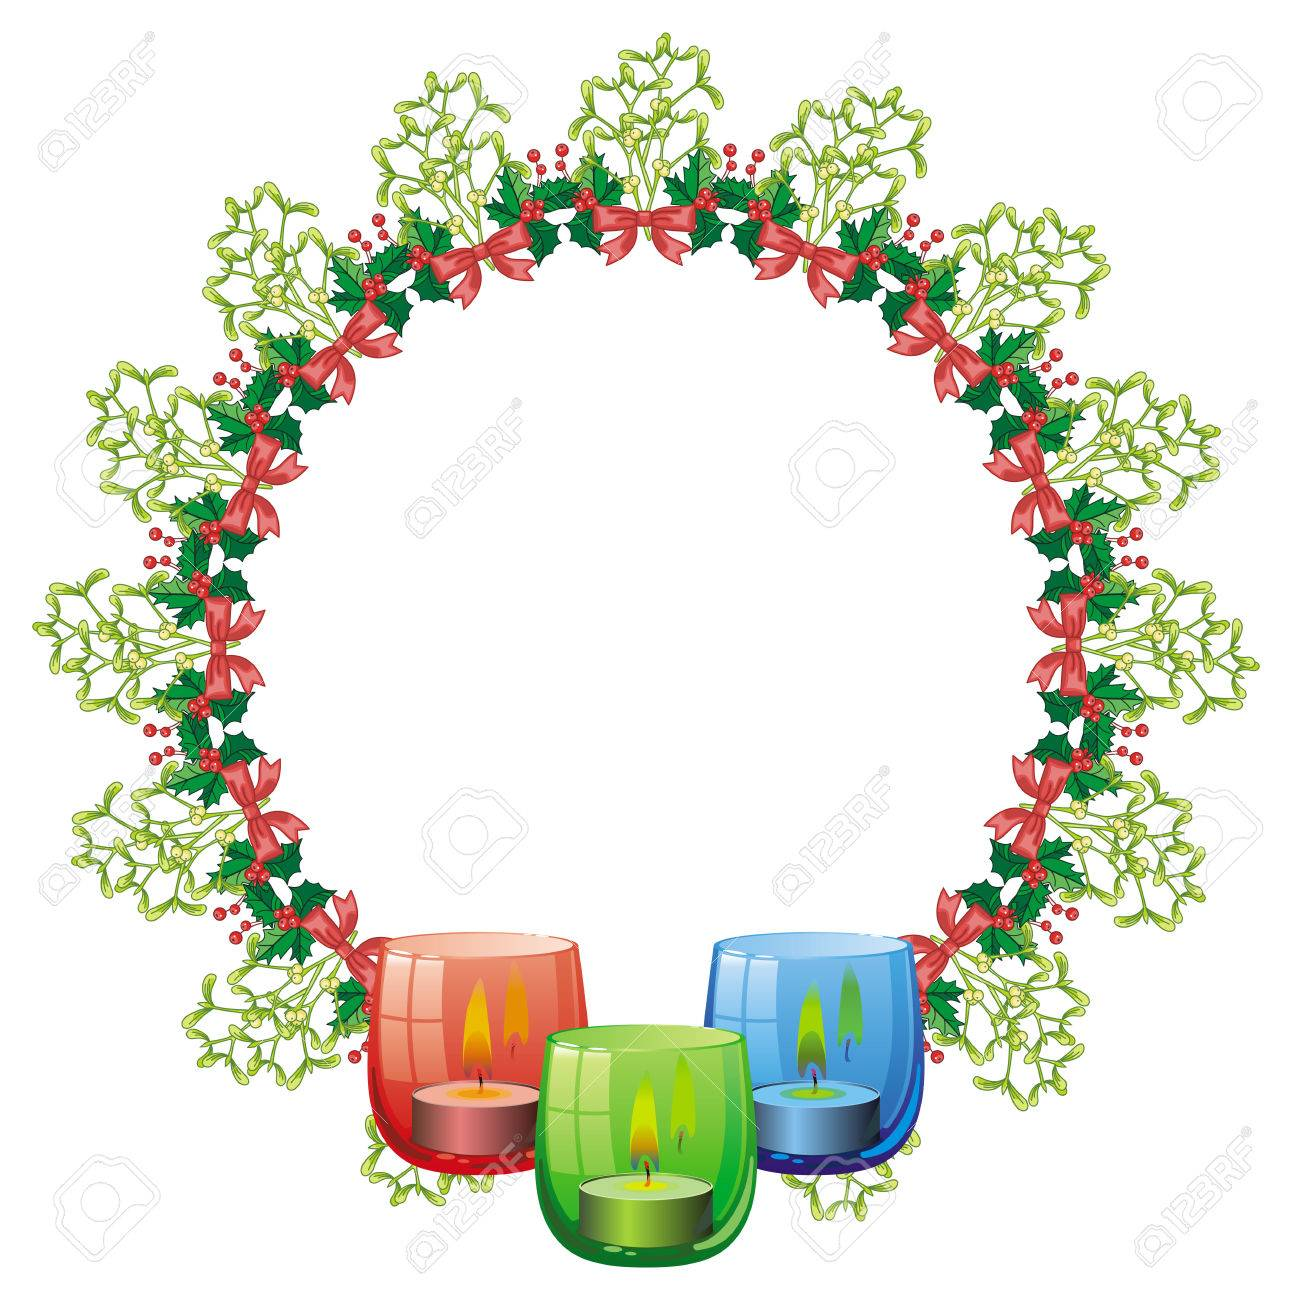 round frame in shape of christmas garland and lighted candle rh 123rf com christmas garland clip art borders vintage christmas garland clip art